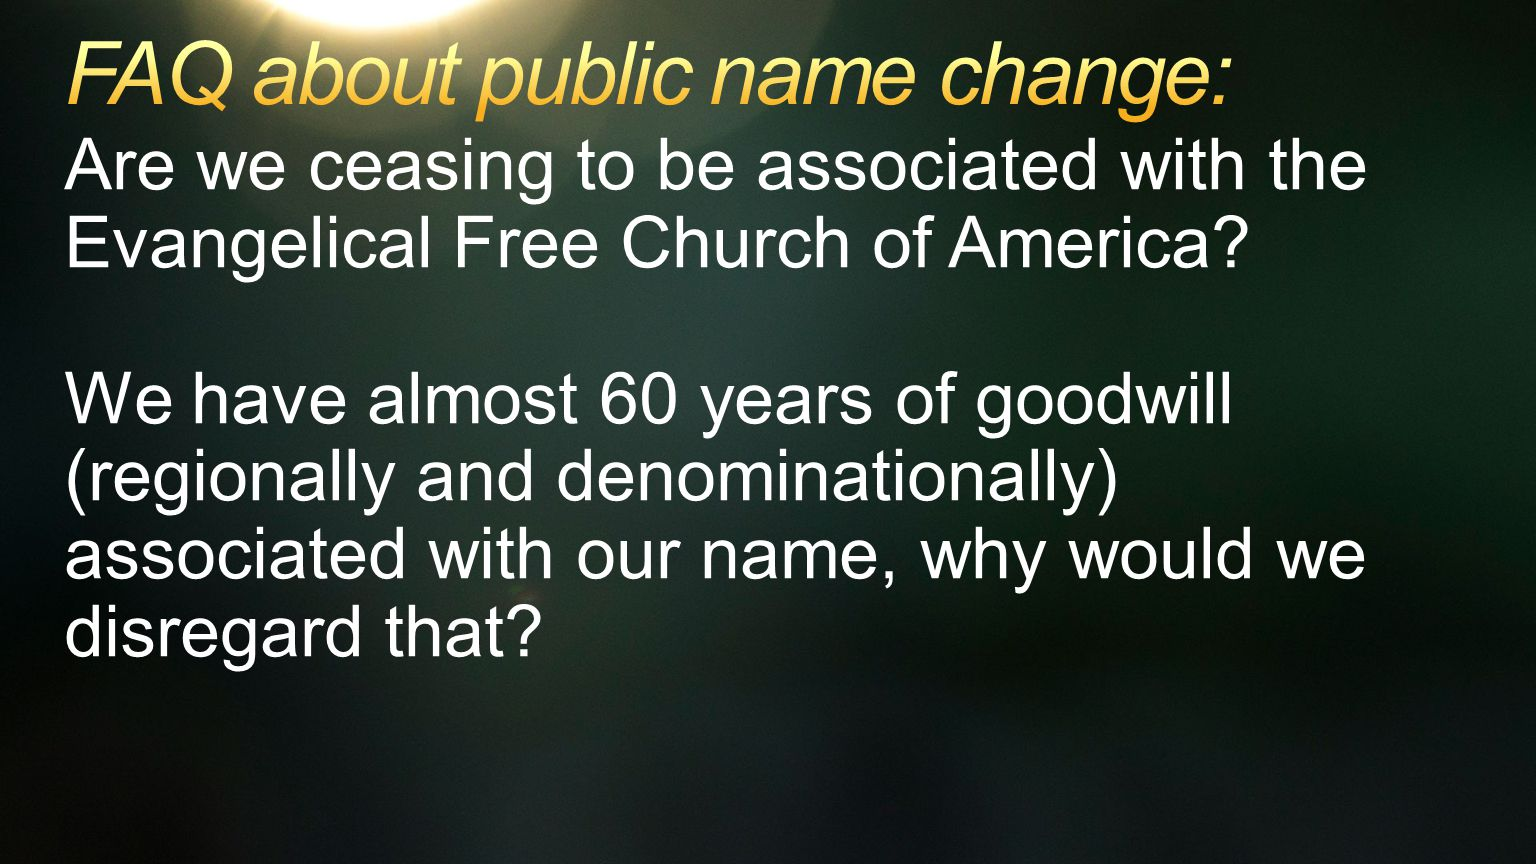 Are we ceasing to be associated with the Evangelical Free Church of America.